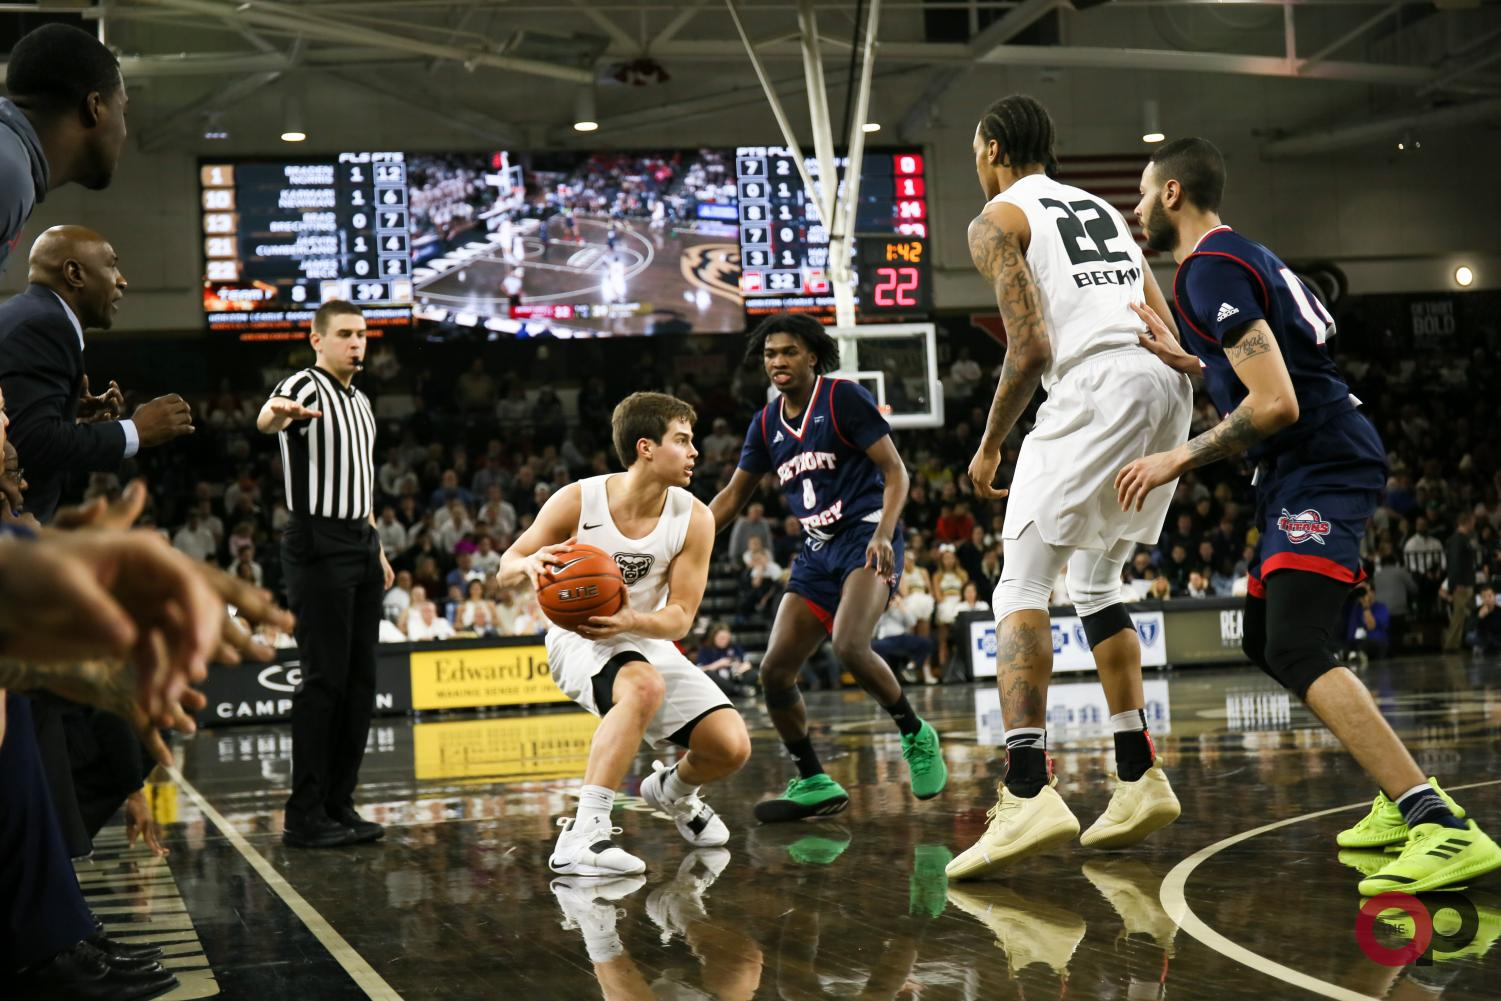 The O'rena was packed with record attendance as the Golden Grizzlies went toe-to-toe with the Titans.